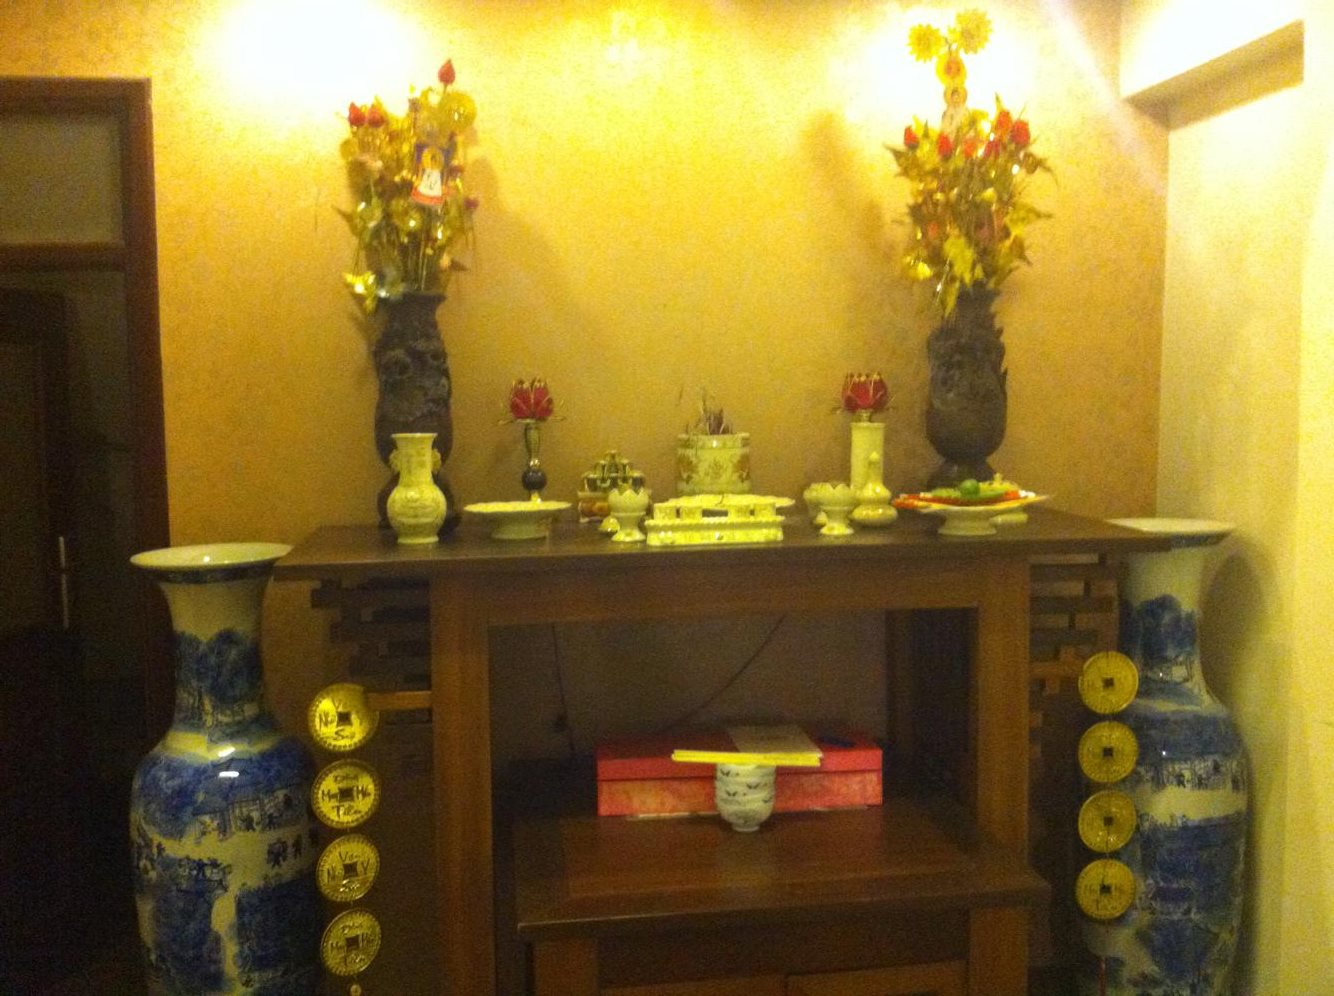 A Vietnamese Friend's Home Altar